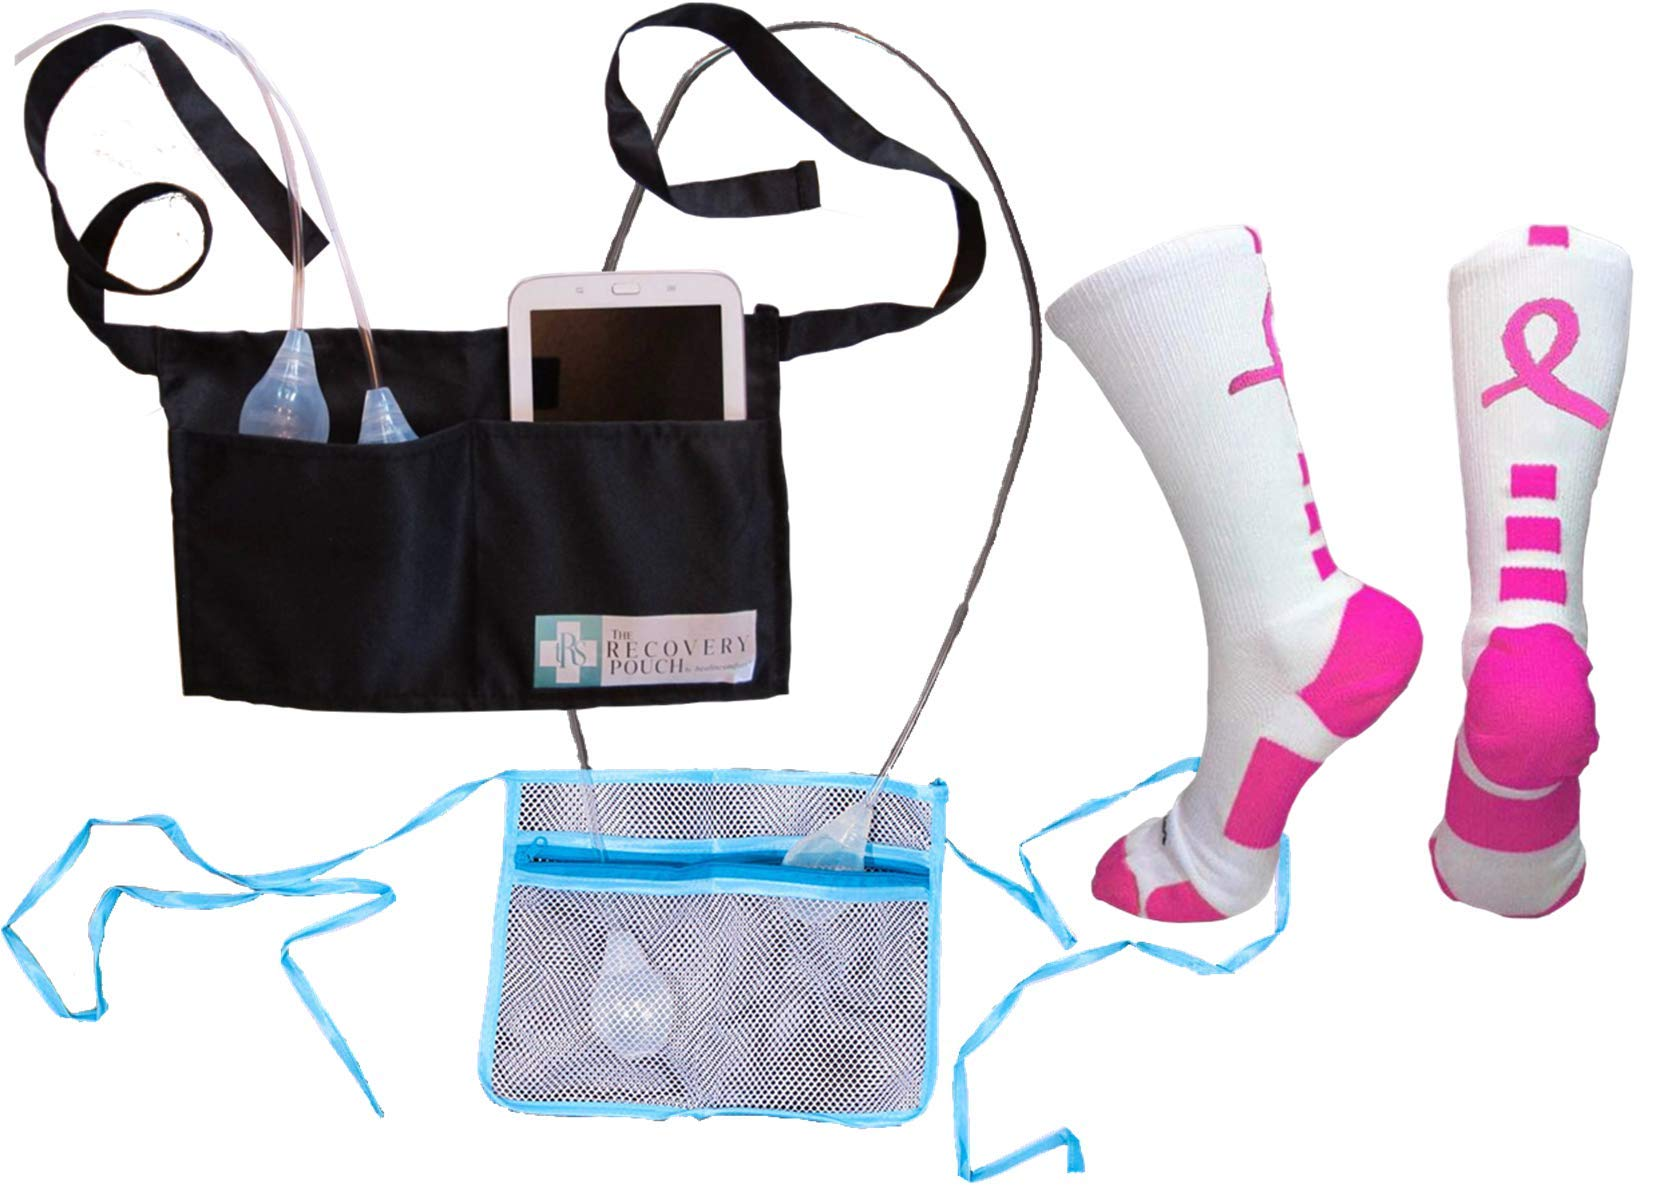 TRS Breast Cancer Mastectomy Drain Bulb Pouch Holder 1 for Shower 1 for Day/Bedtime Plus Compression Socks